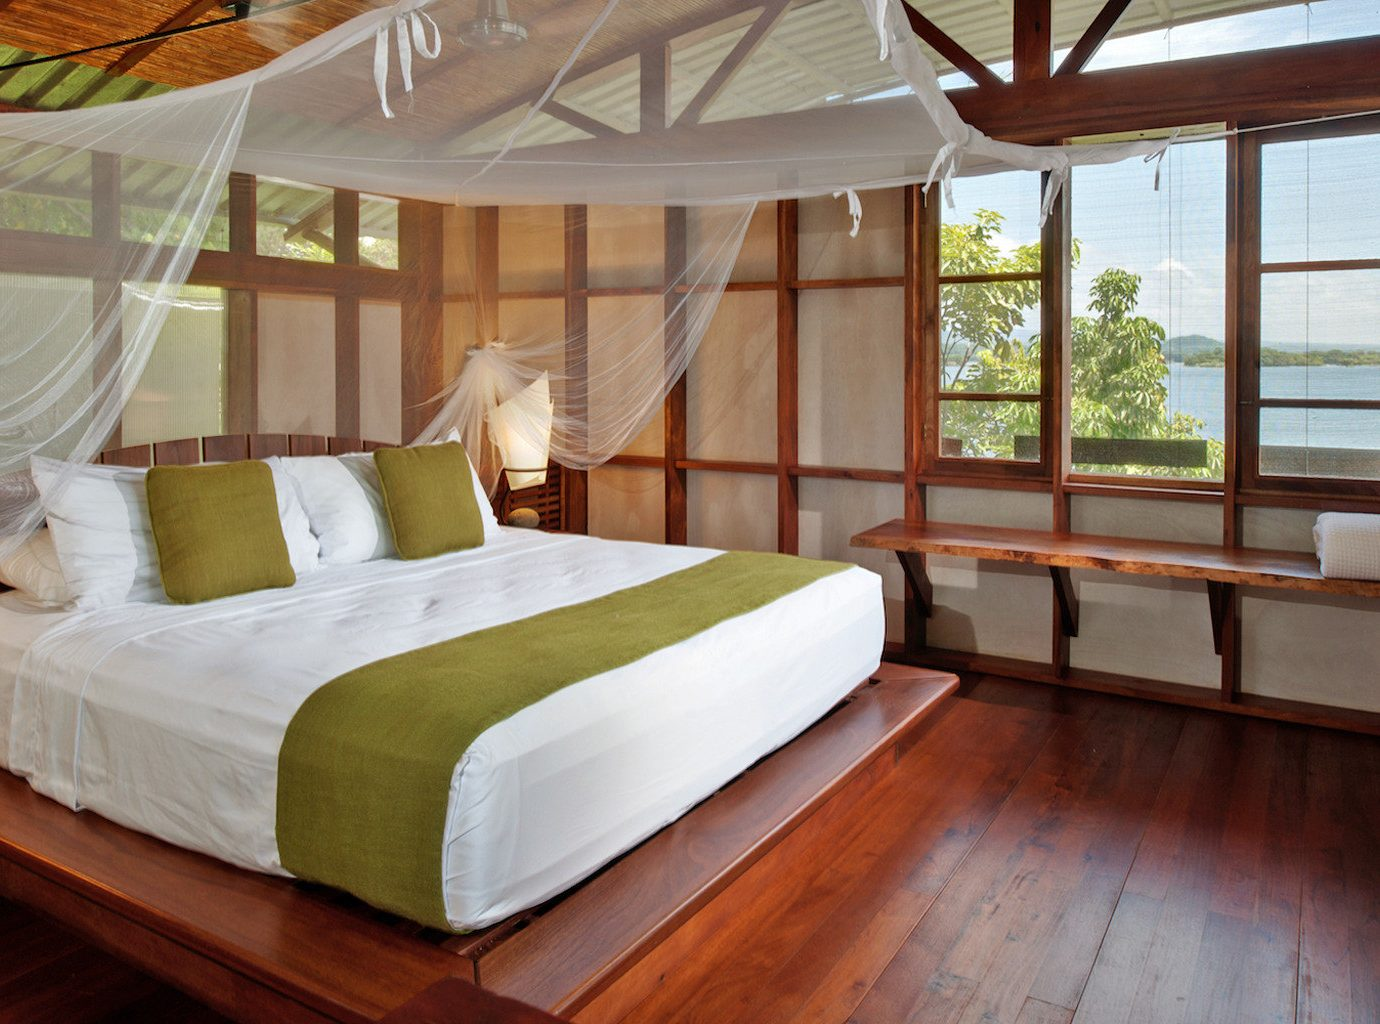 All-inclusive All-Inclusive Resorts Bedroom Eco Family Travel Honeymoon Hotels Resort Romance Romantic Trip Ideas indoor floor bed room property window cottage estate interior design furniture Villa bed sheet Suite real estate wood